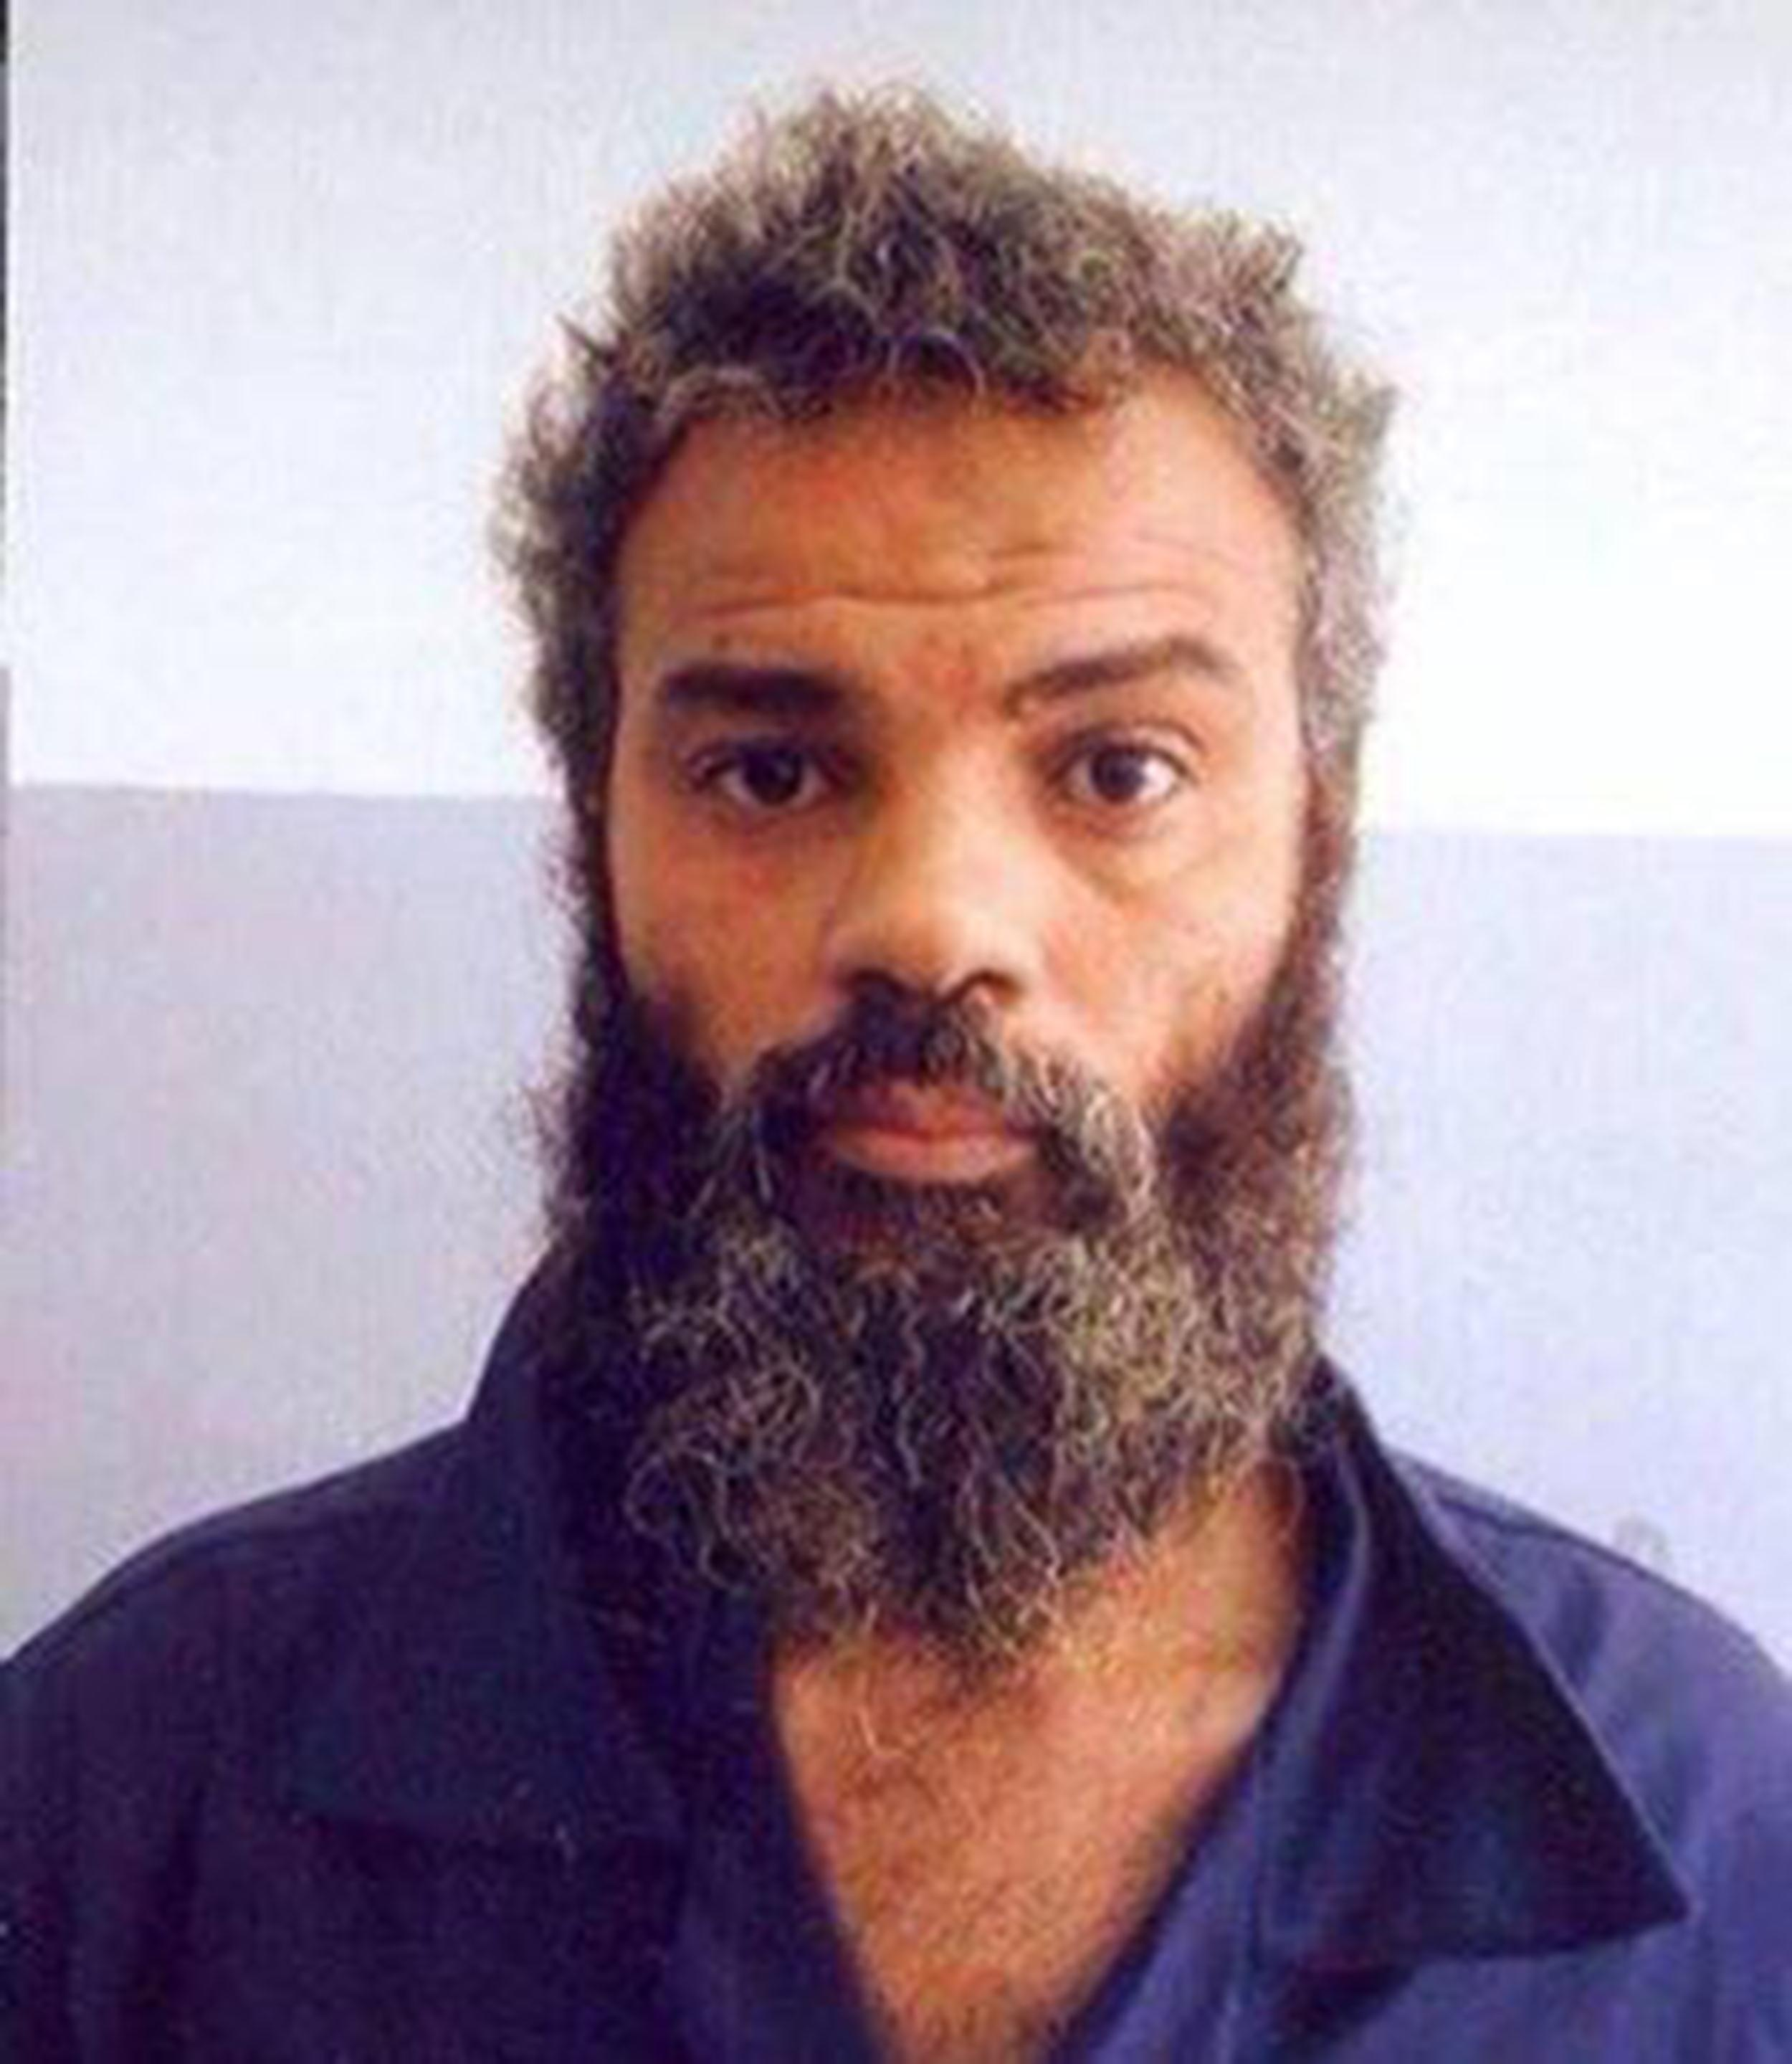 Image: Ahmed Abu Khattala was charged by the U.S. for the attack U.S. consulate in Benghazi, Libya.